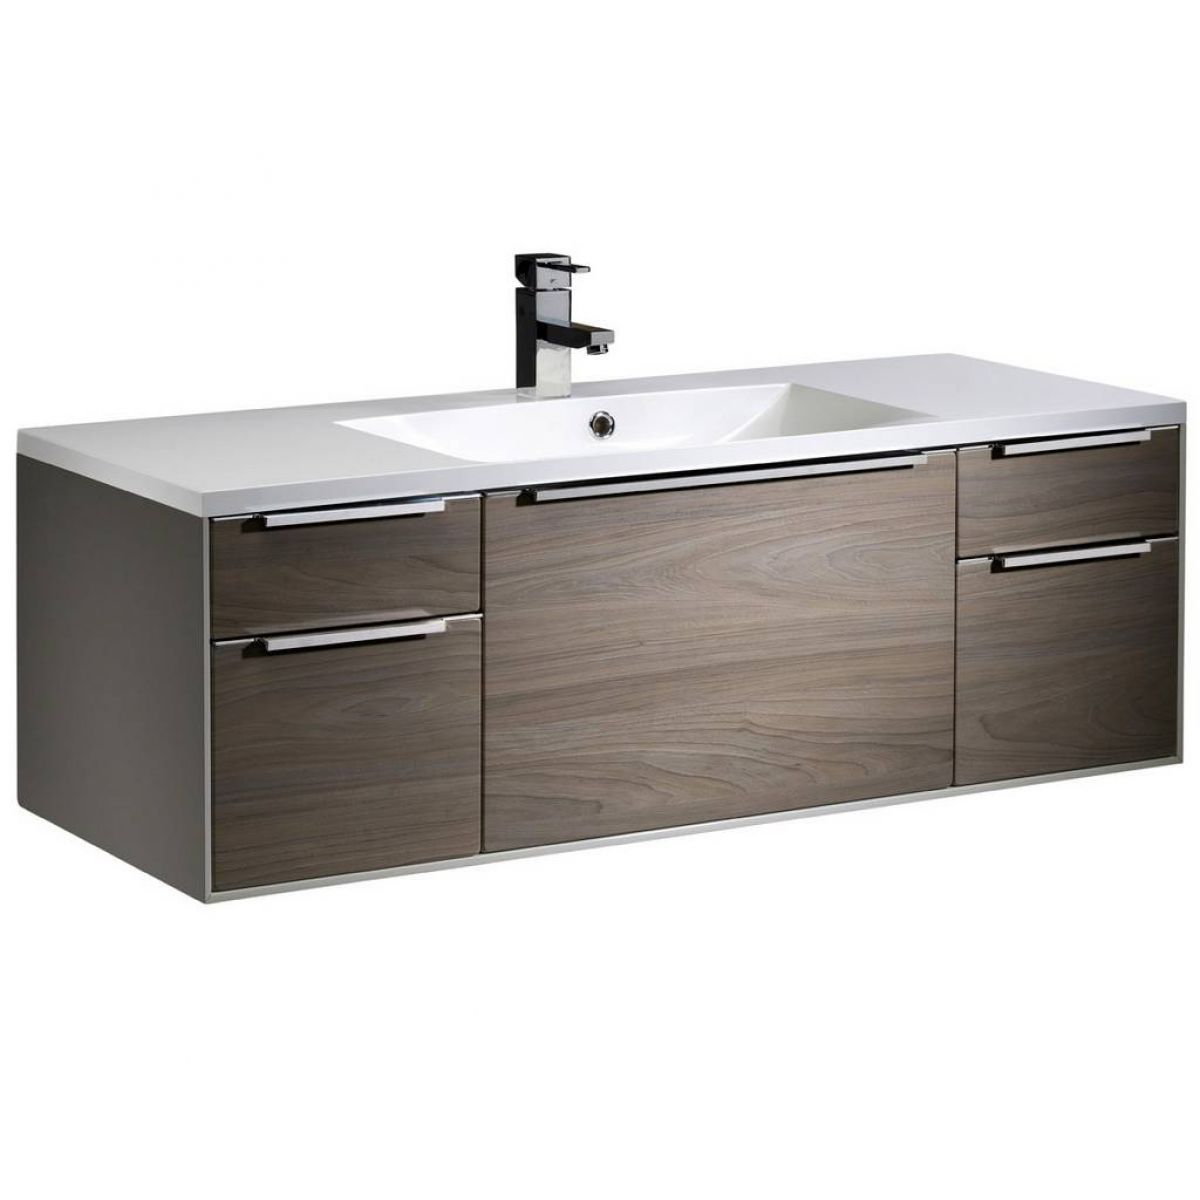 Roper Rhodes Vista 1200mm Wall Mounted Unit And Iscocast Basin Bathroom Furniture Modern Wall Mounted Vanity Freestanding Bathroom Furniture